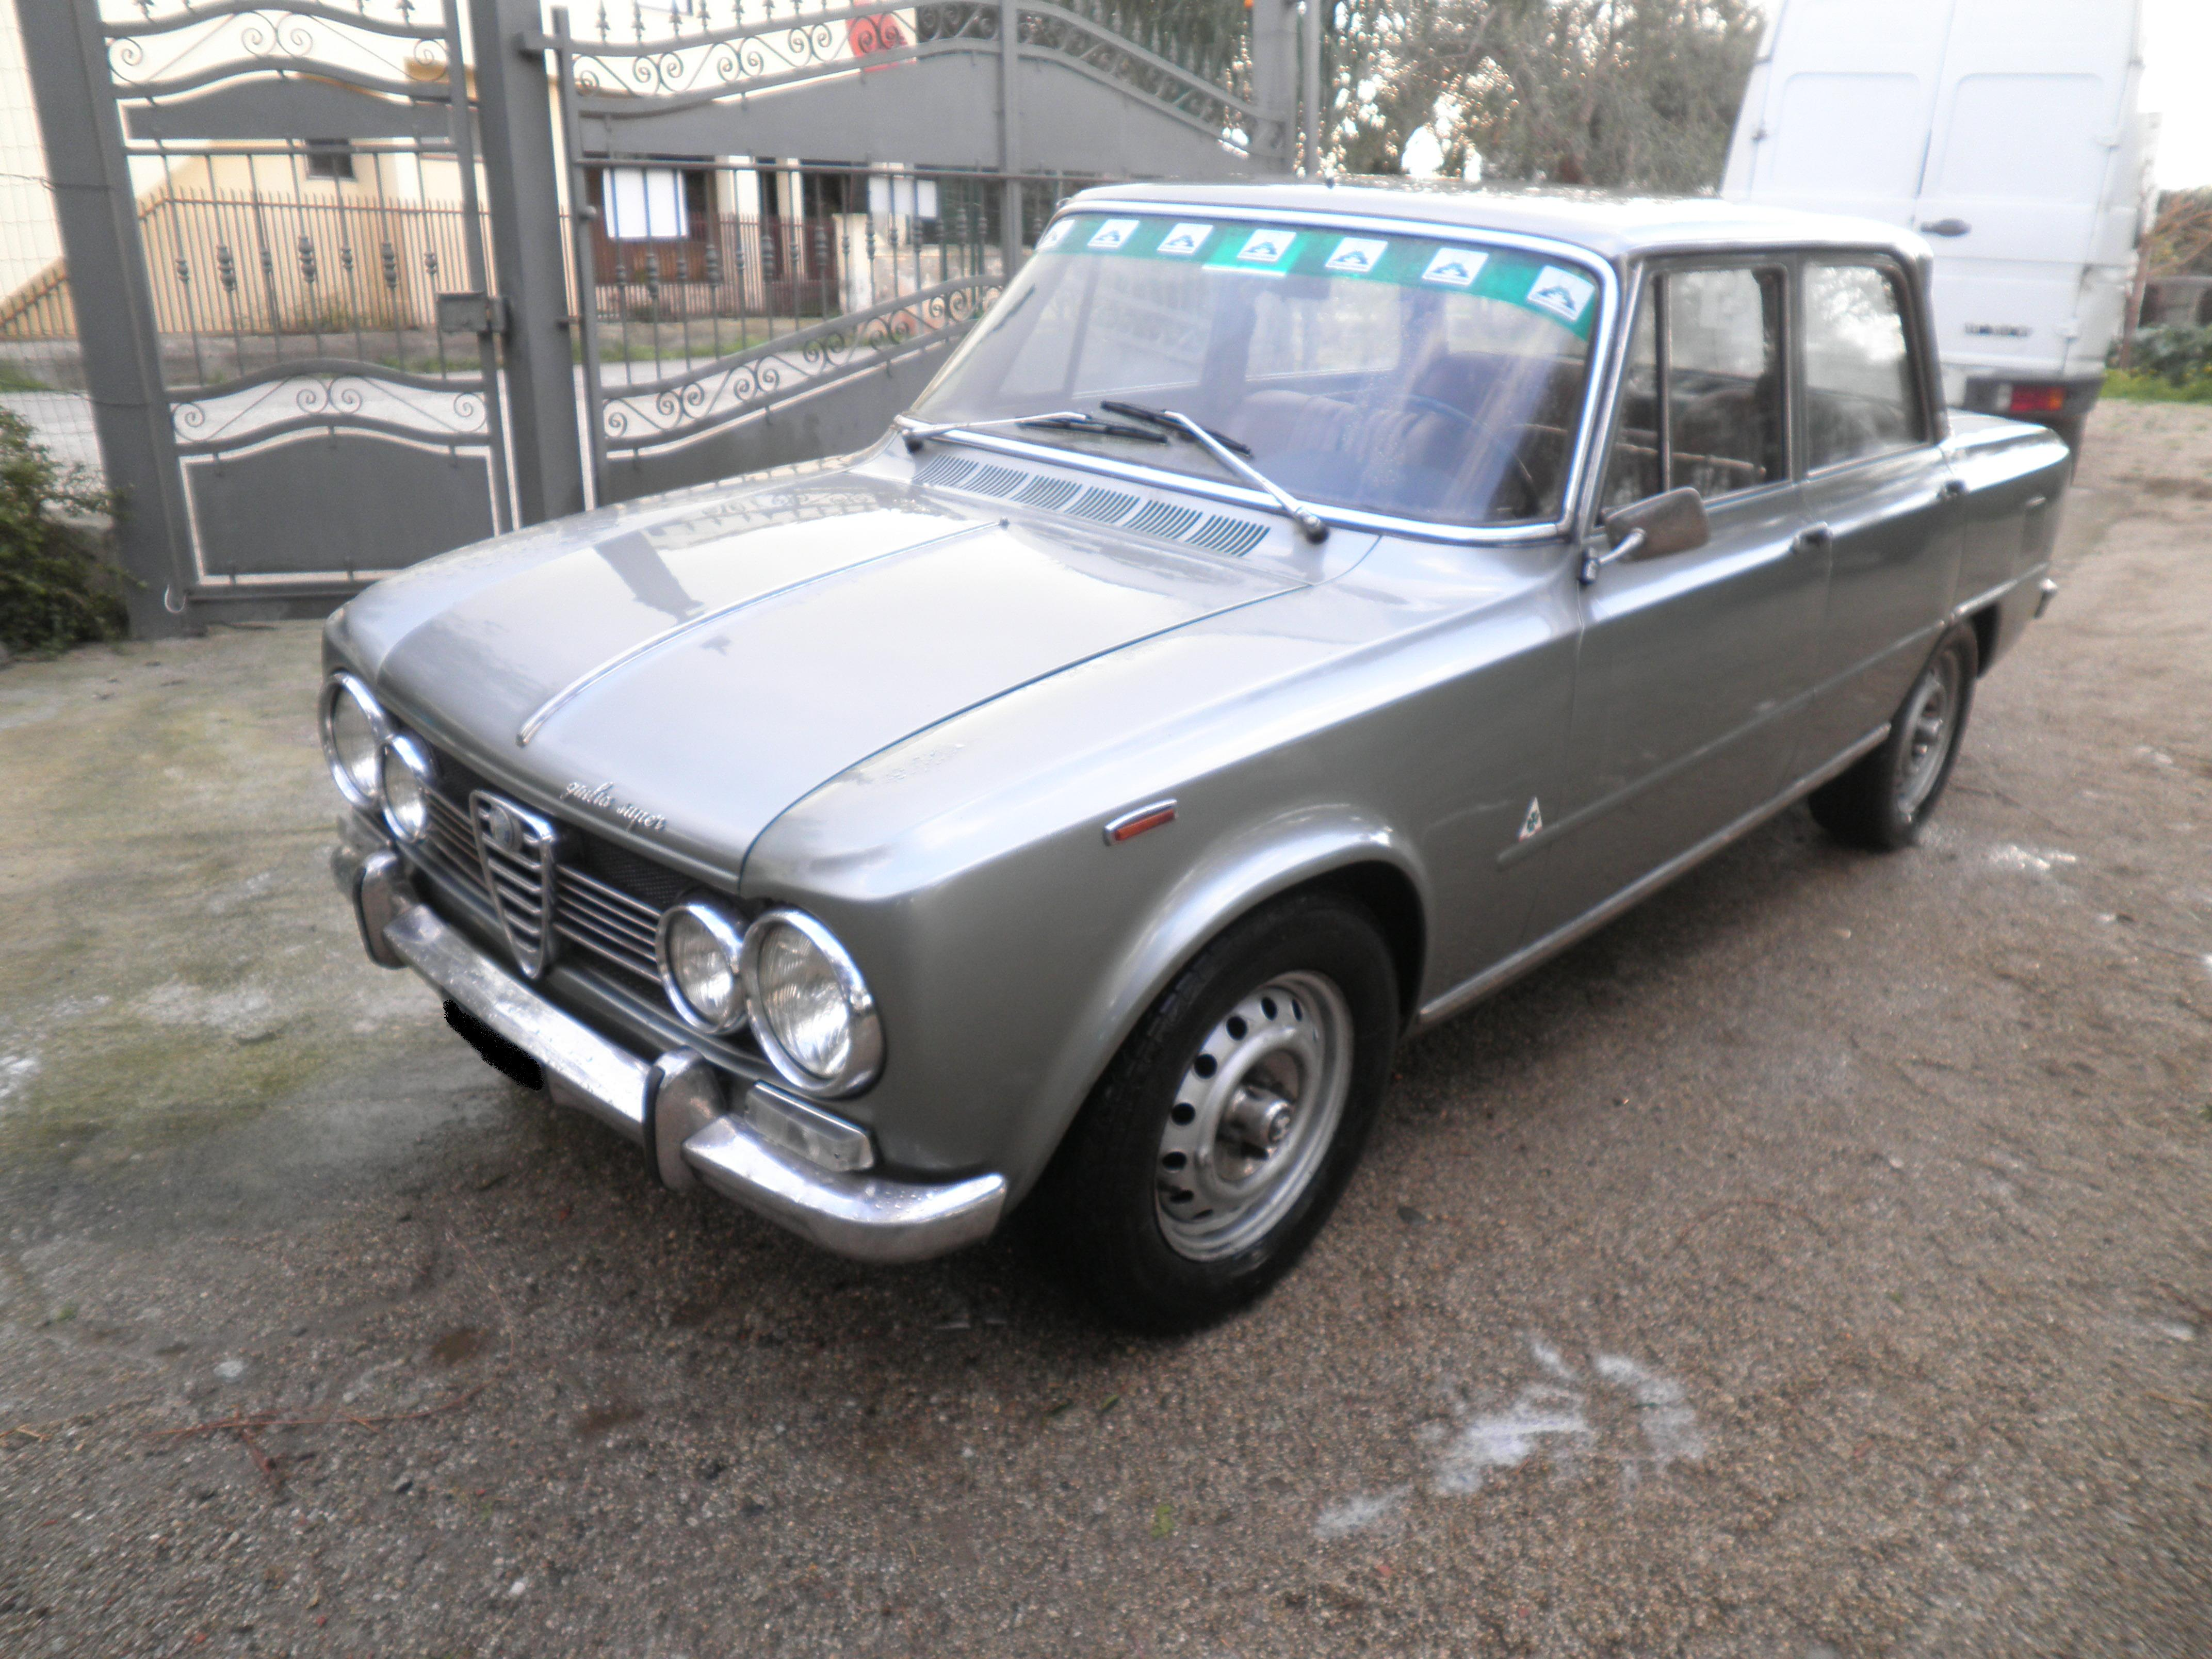 84755665 as well Product large together with Alfaromeo moreover Archive also 1962 Fiat 600 Multipla. on fiat abarth 2000